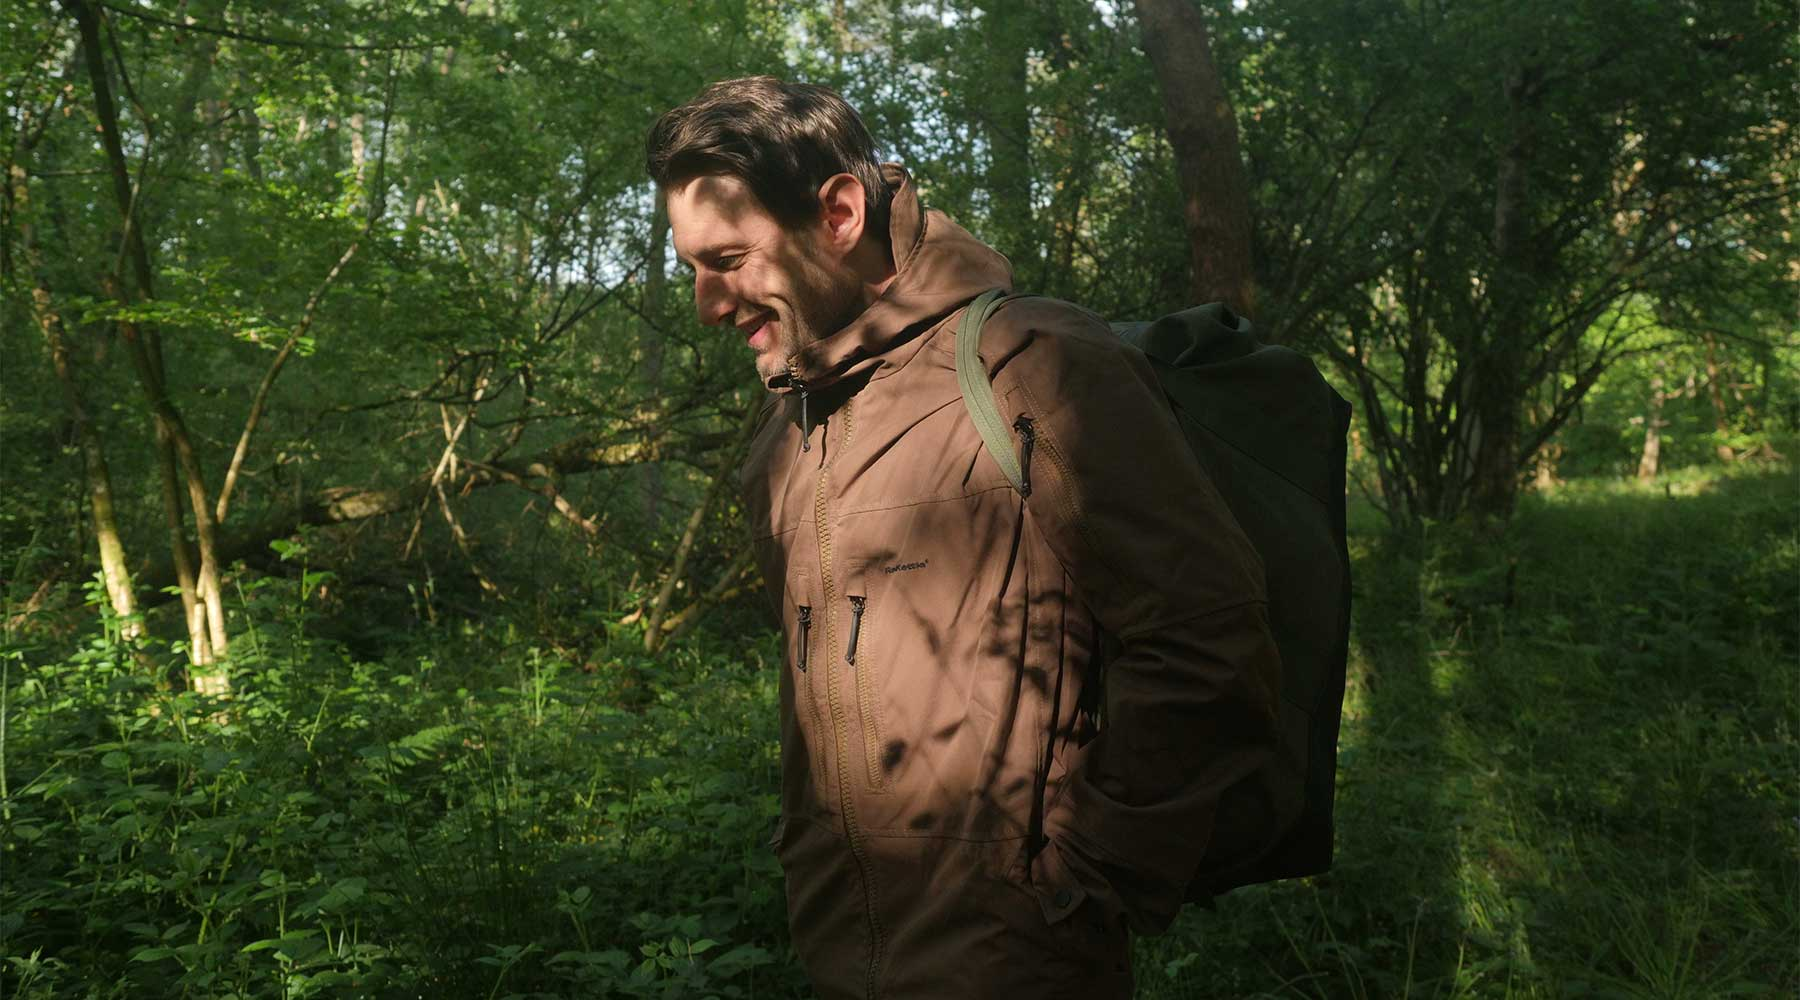 New! Light Ventile Hunting Jacket M19 in organic cotton